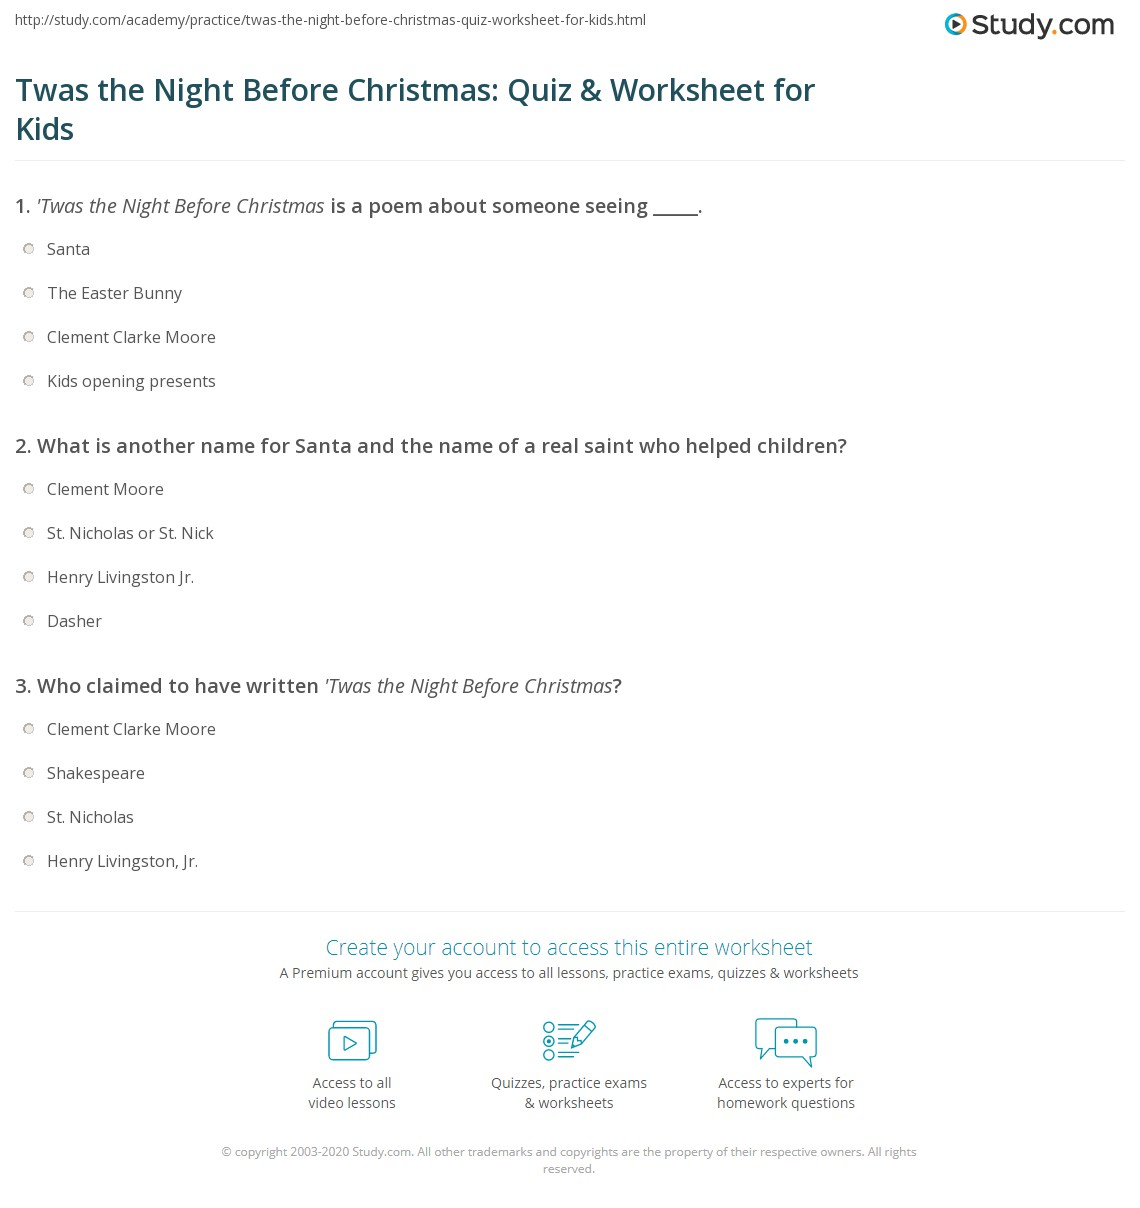 picture relating to Twas the Night Before Christmas Poem Printable named Twas the Evening Right before Xmas: Quiz Worksheet for Youngsters